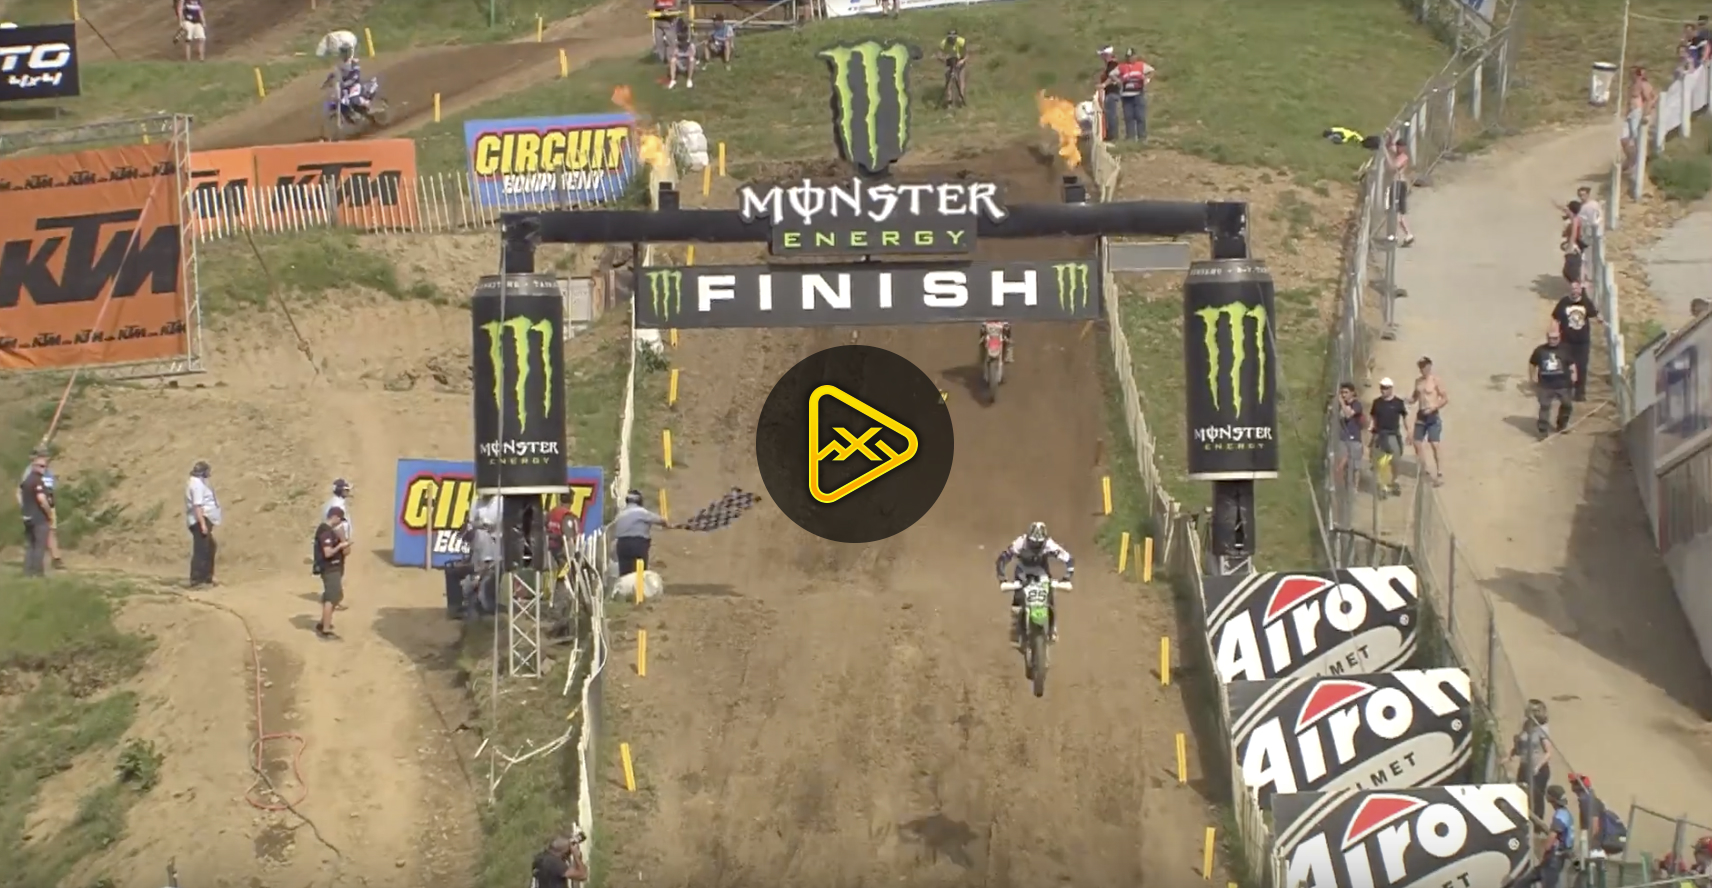 2017 MXGP of France Qualifying Highlights